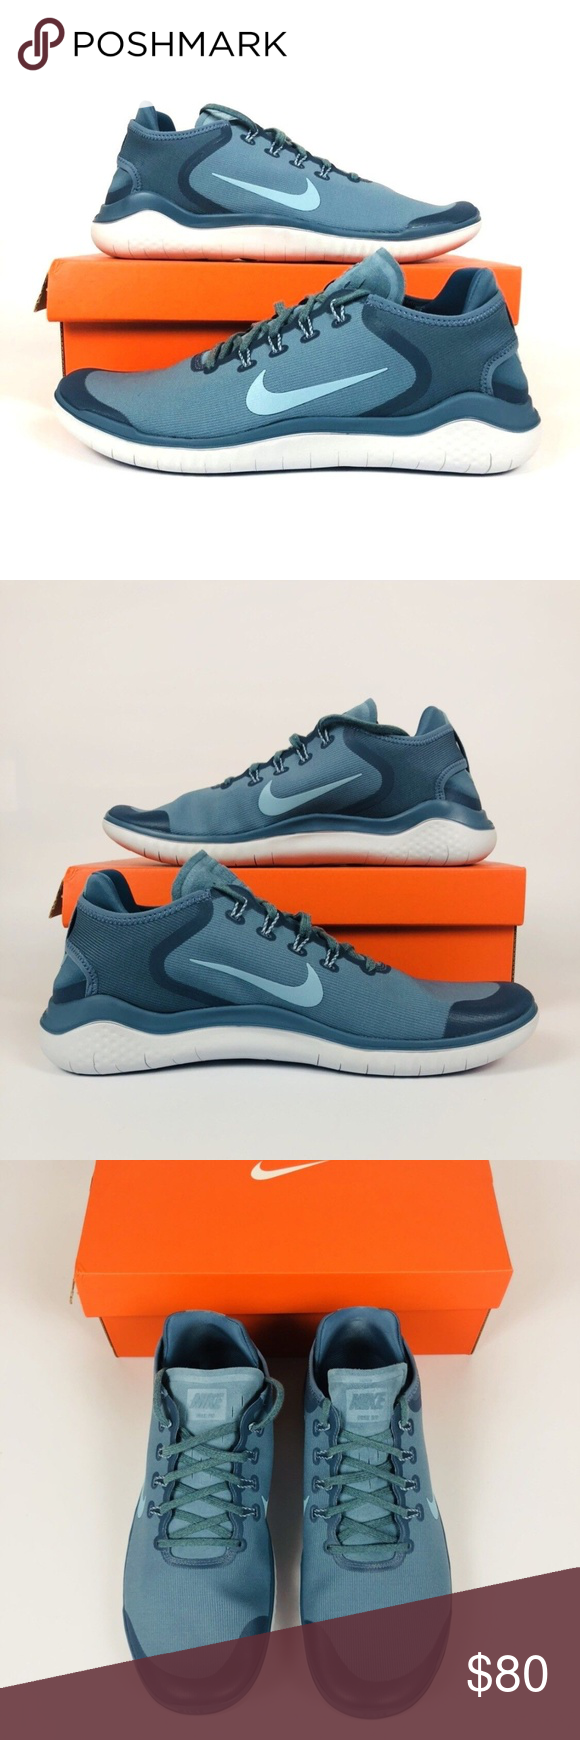 dedf7a7360349 Nike Free RN 2018 Nike Free RN 2018 SUN Running Shoes Blue AH5207 400 NEW  New With Box Shipped Double Boxed Nike Shoes Sneakers